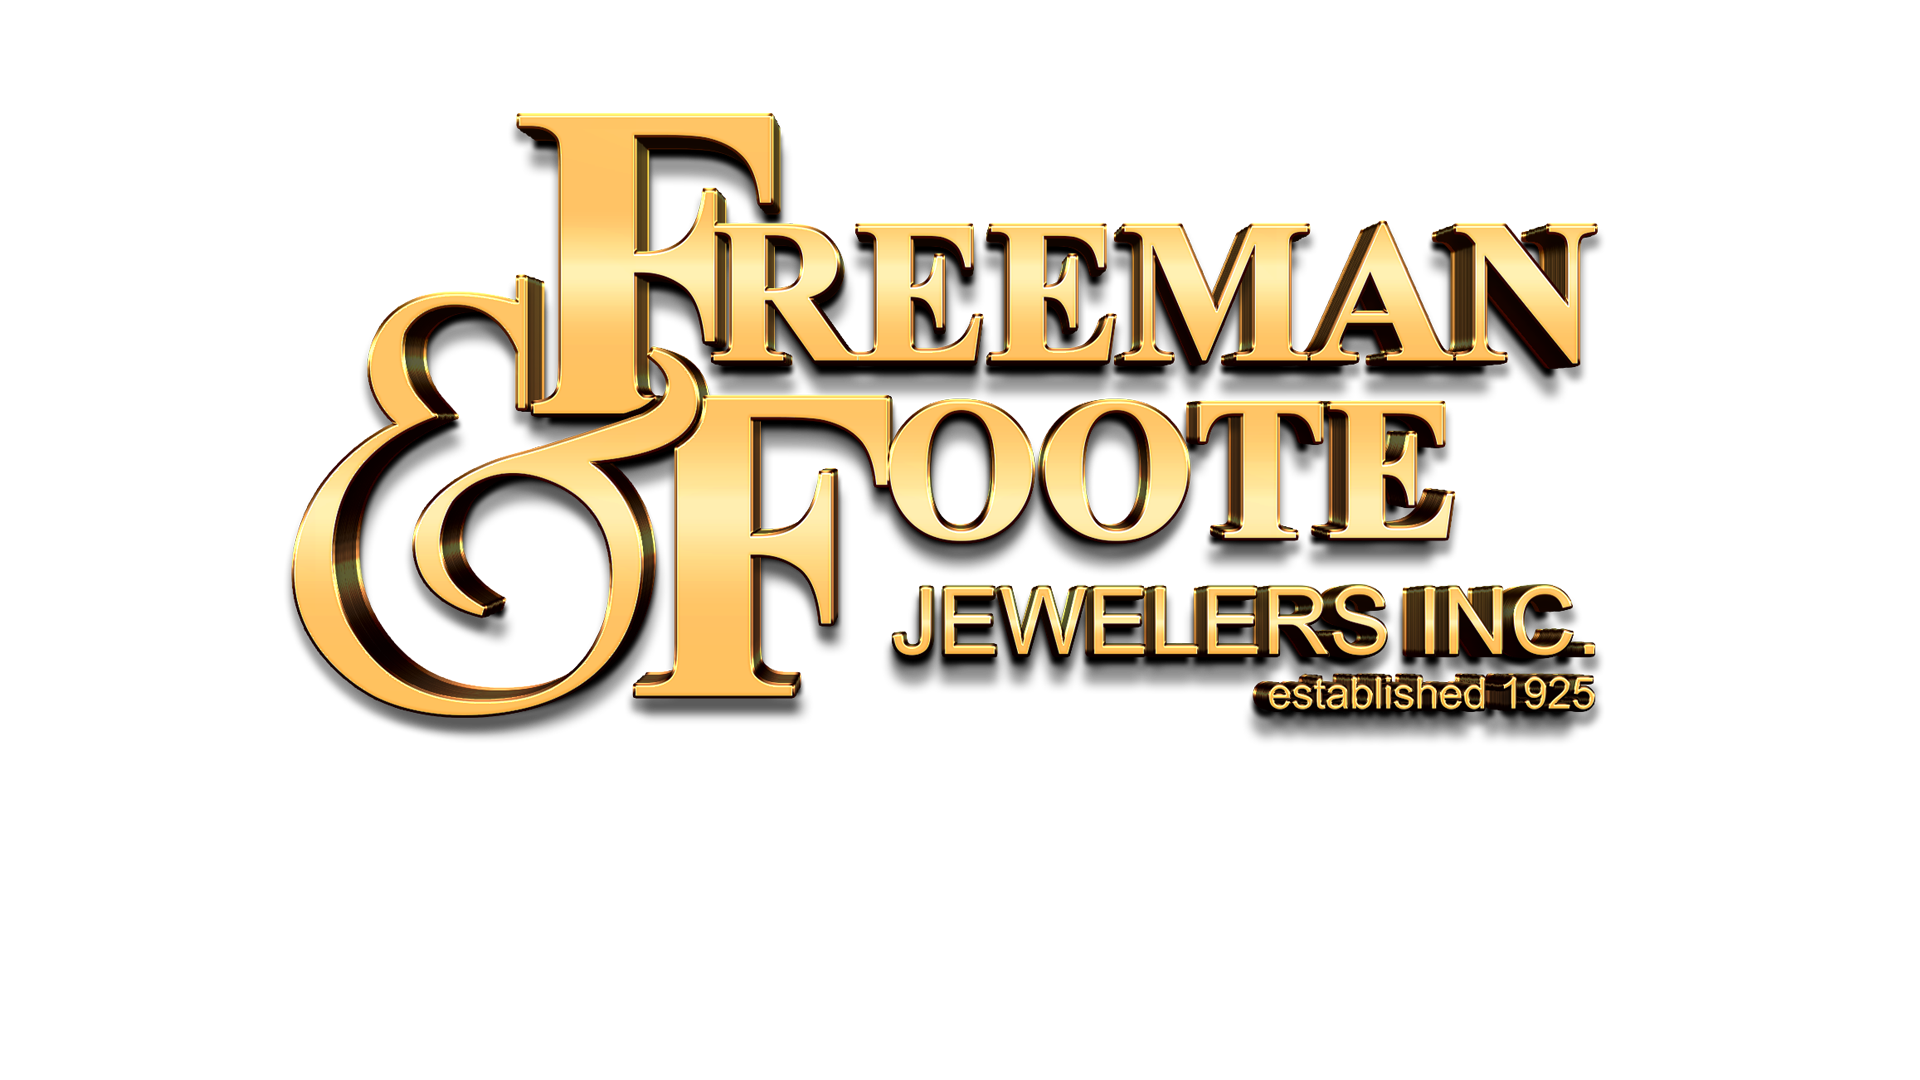 Freeman & Foote Jewelers Inc. in Utica, NY, photo #12